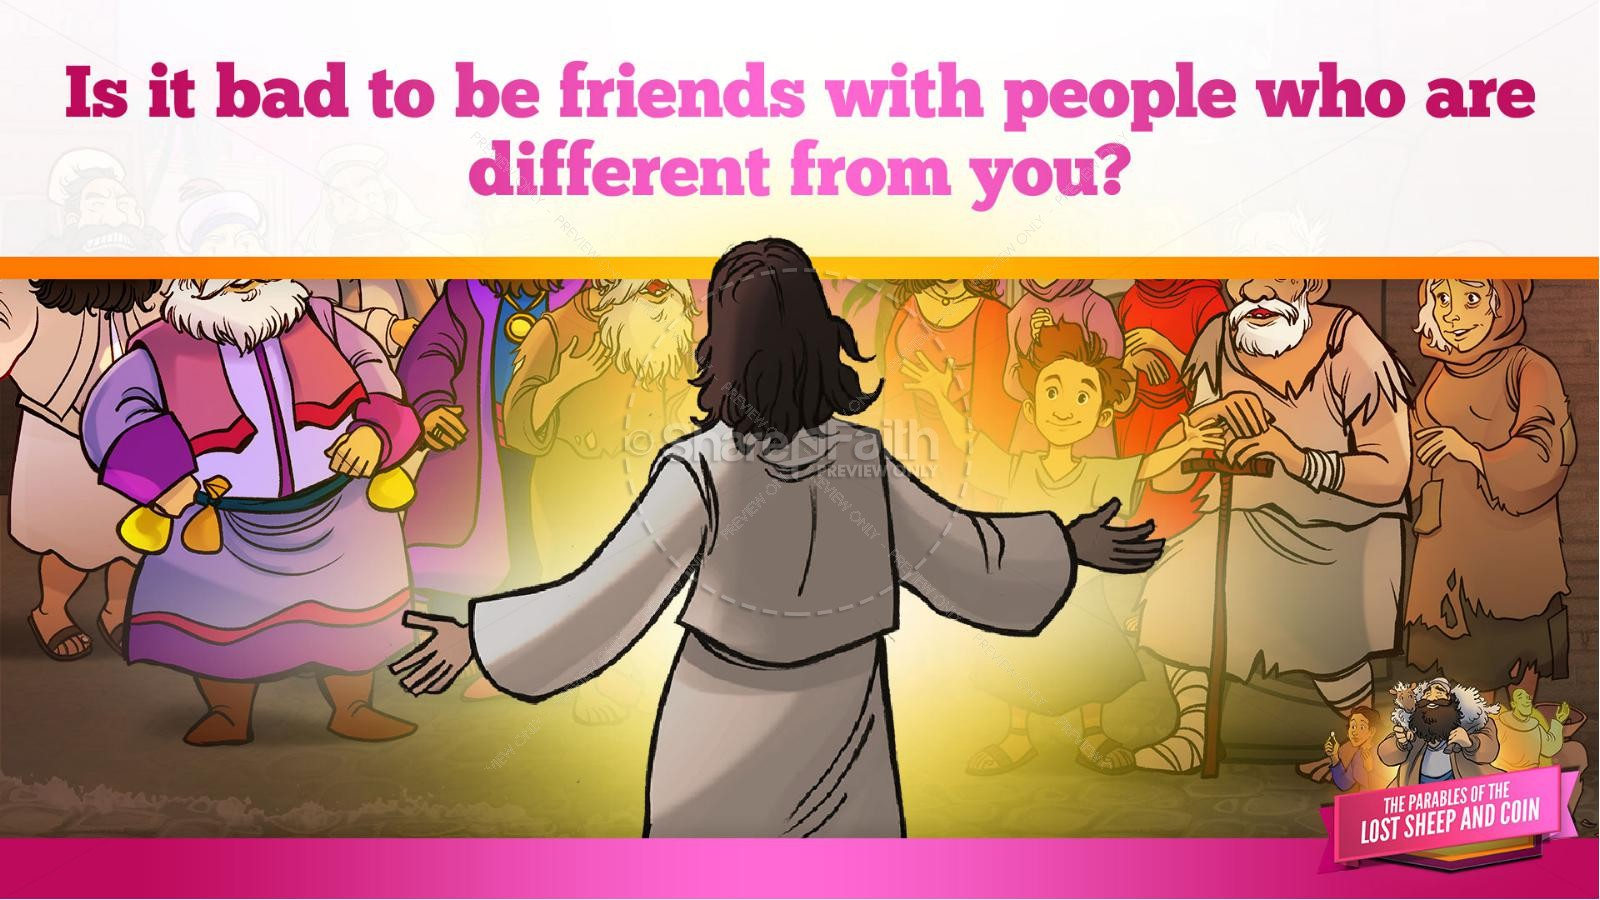 Luke 15 The Parables of the Lost Sheep and Coin Kids Bible Story   slide 13